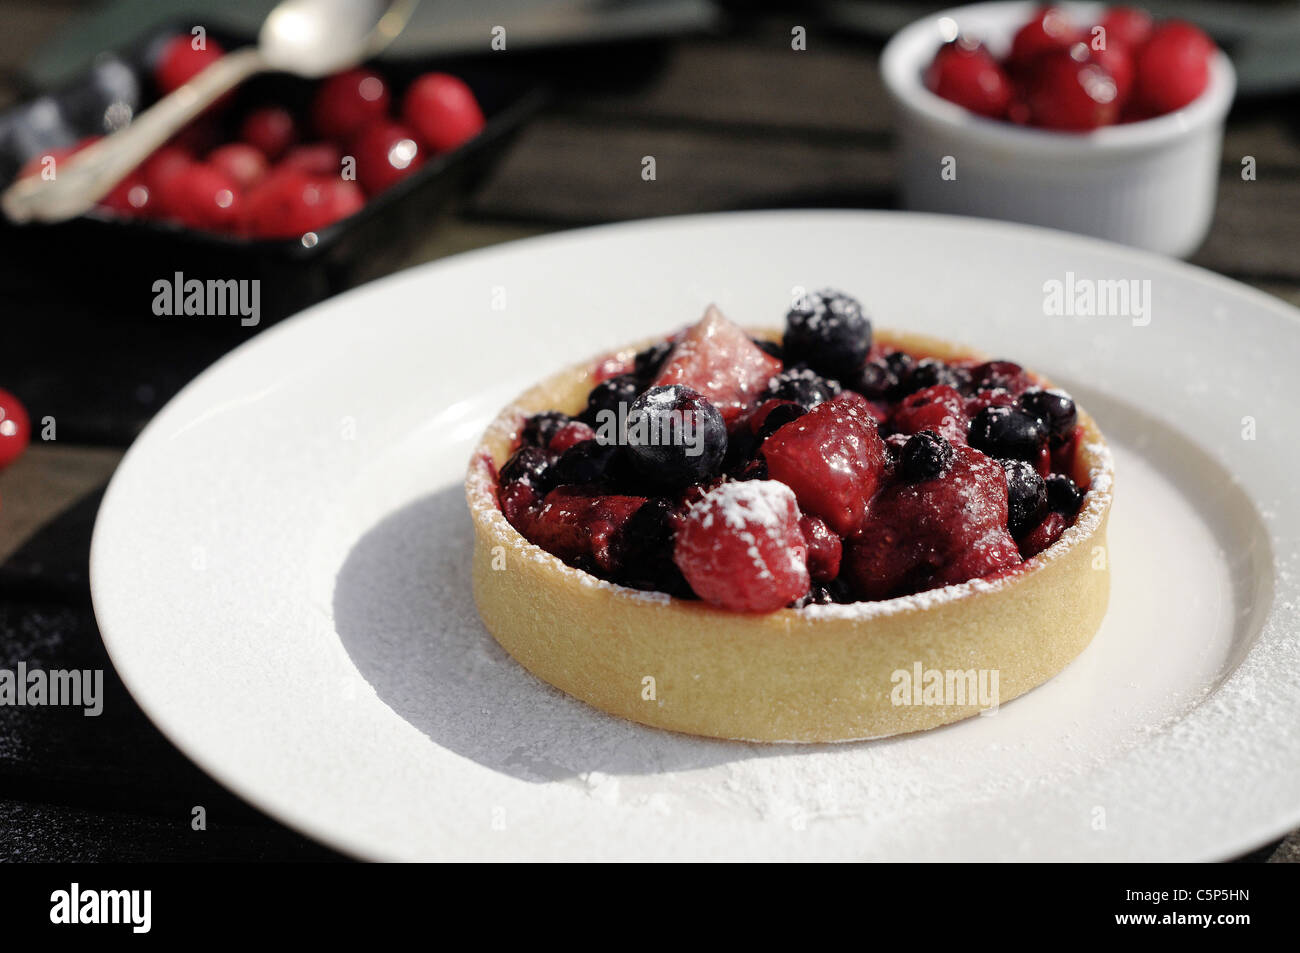 Berry tart outside on a white plate - Stock Image